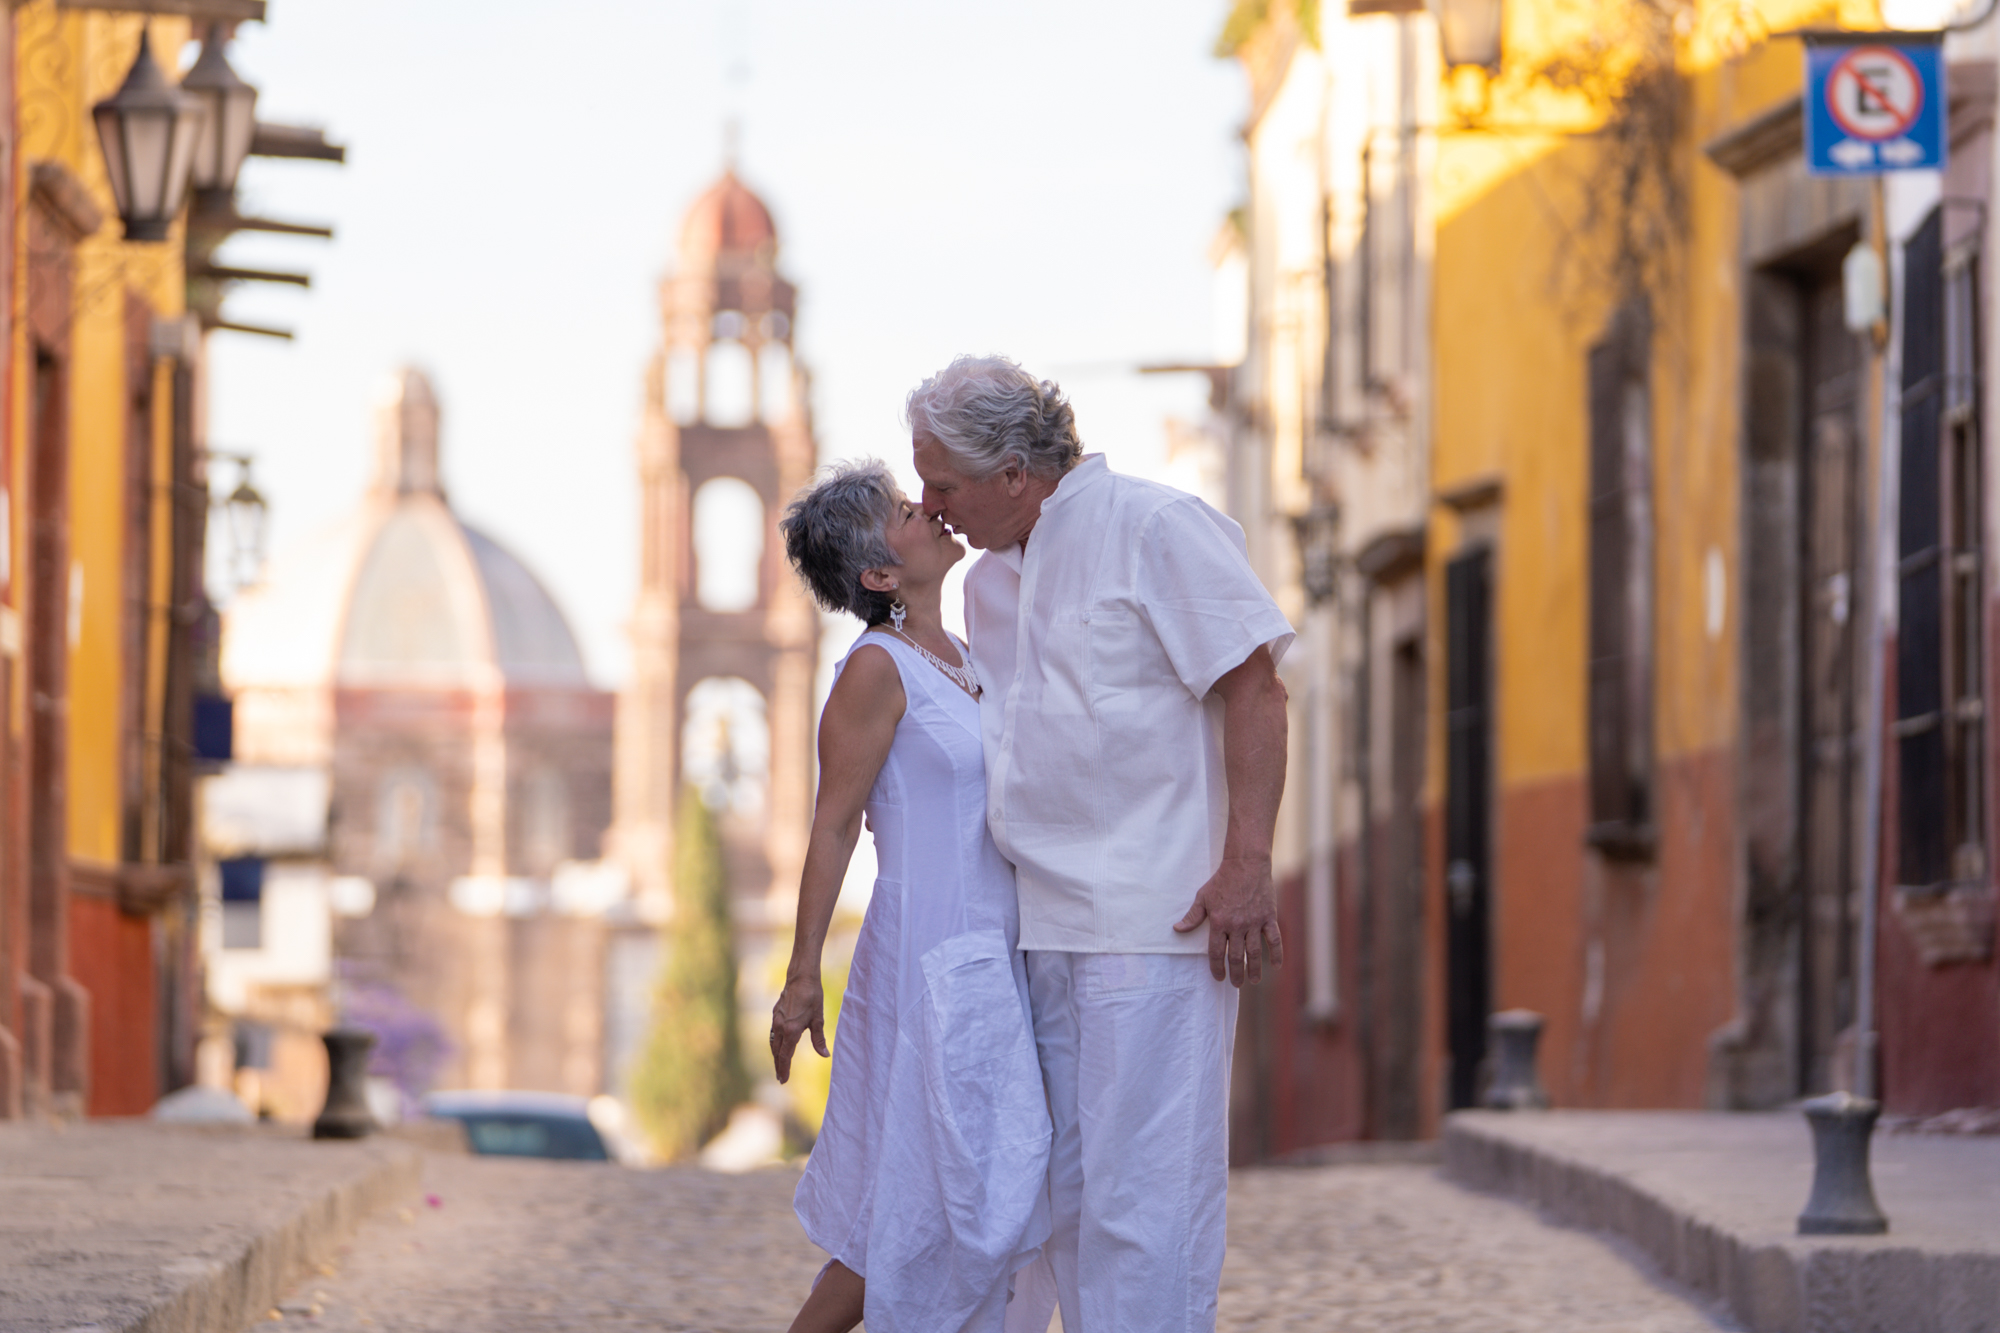 Photoshoot session in San Miguel de Allende with Suzanne and Leo-34.jpg